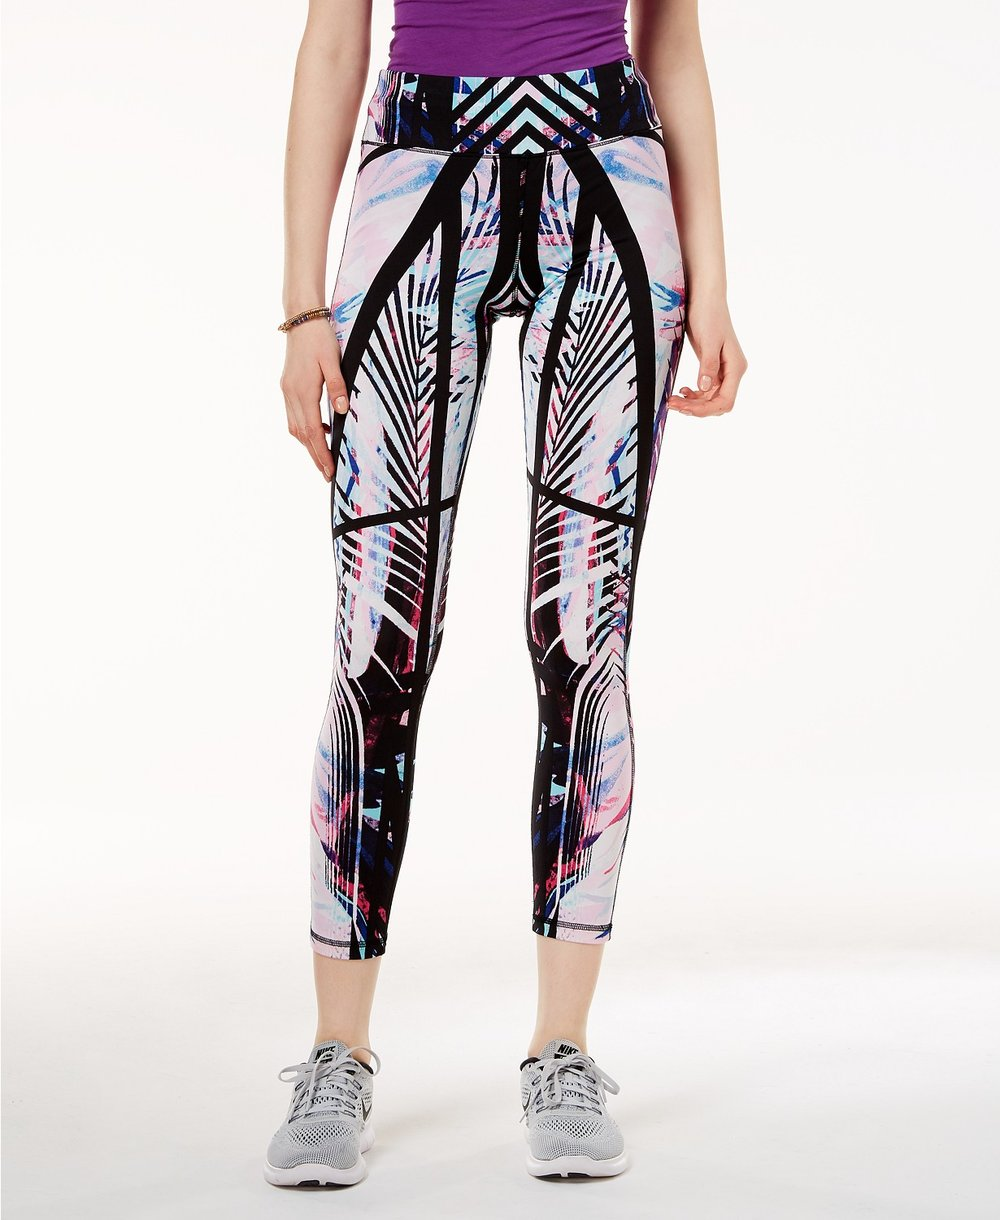 Palm Print Yoga Leggings.jpg